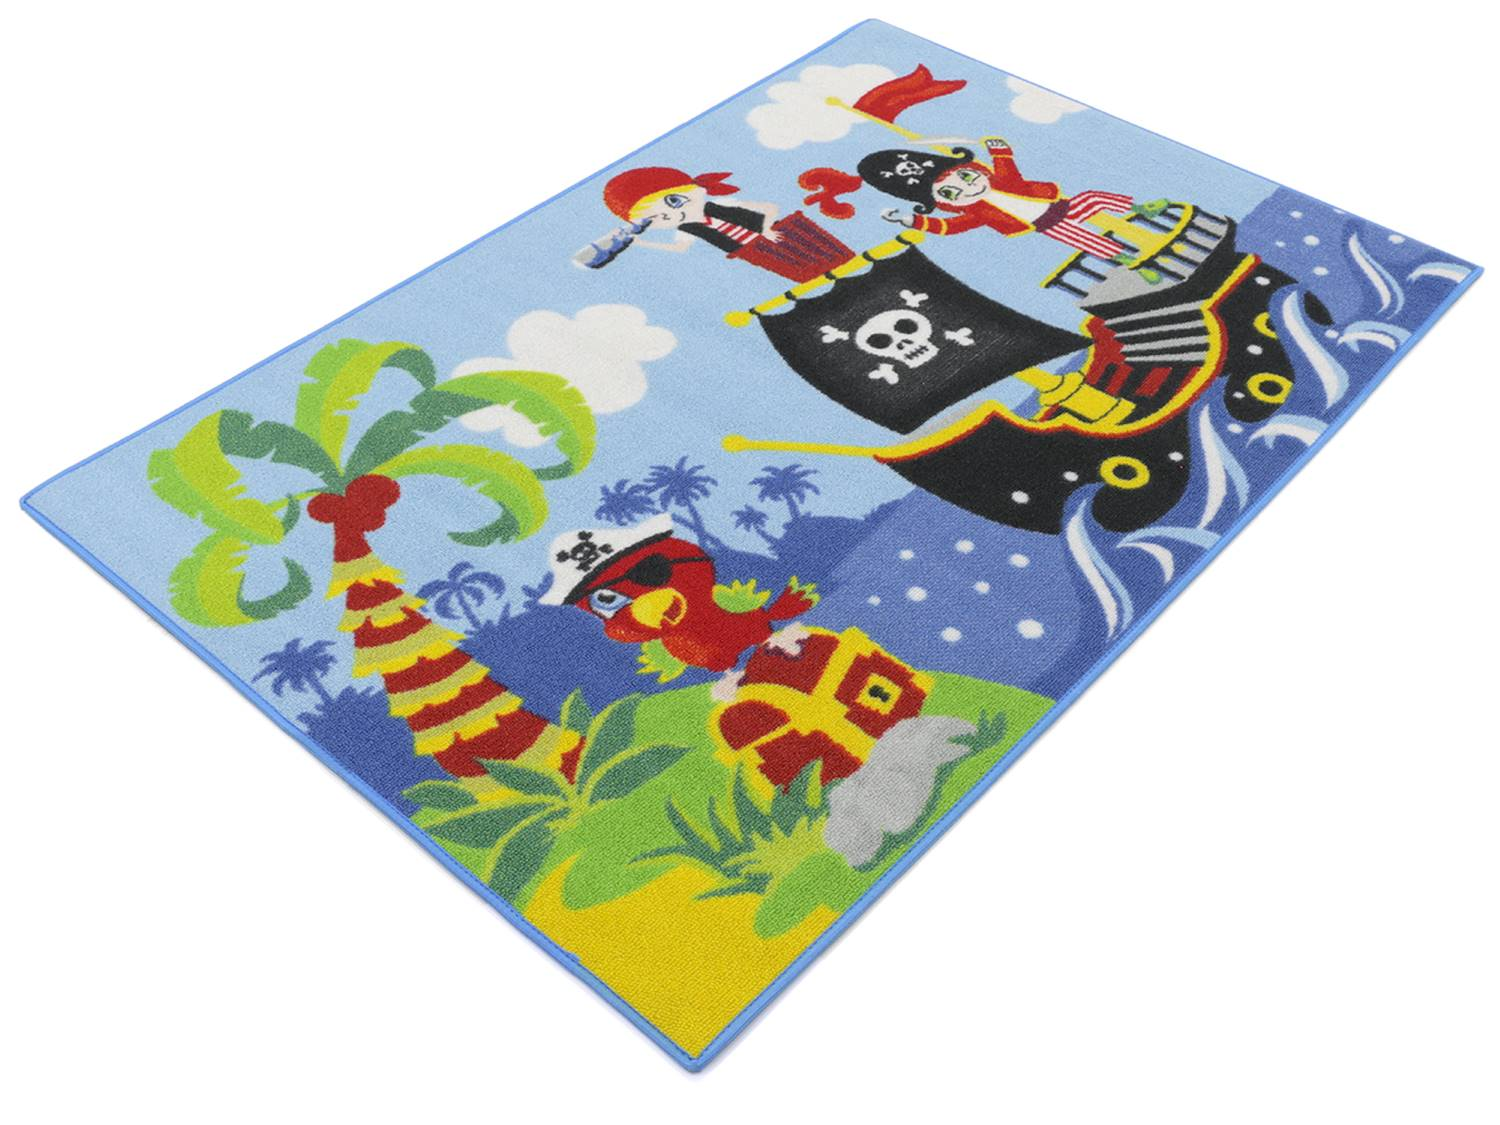 Pirates Boys 03Piraten Kinderteppich80x120 cm